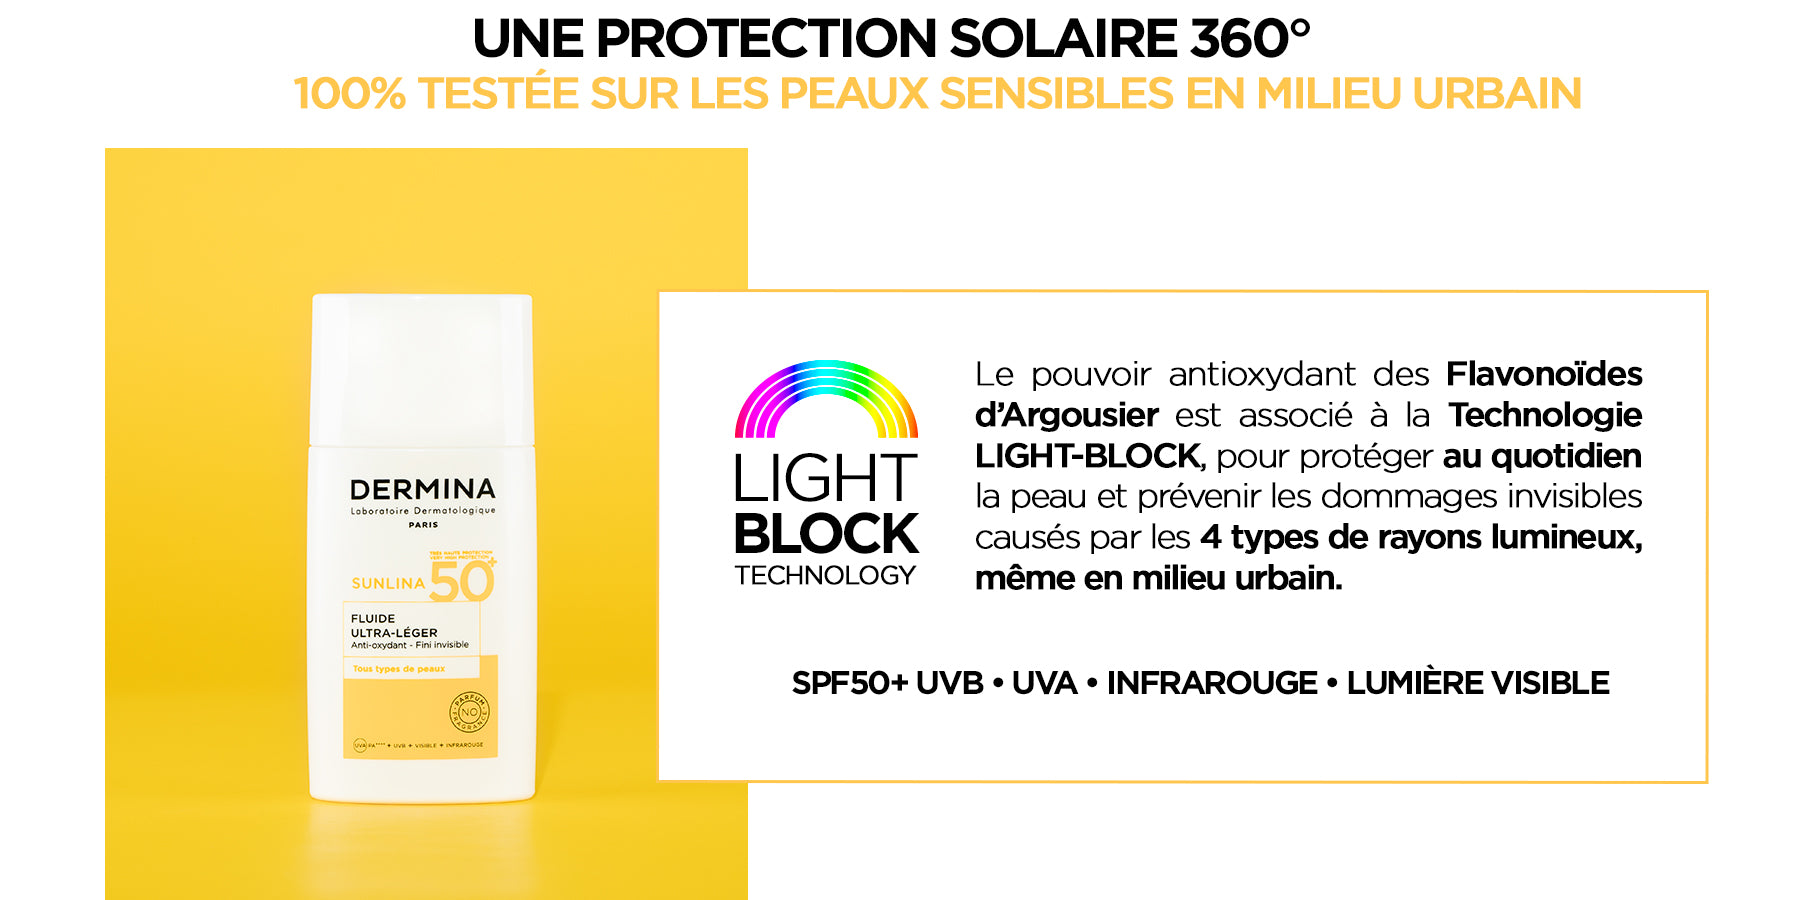 Une protection solaire 360°